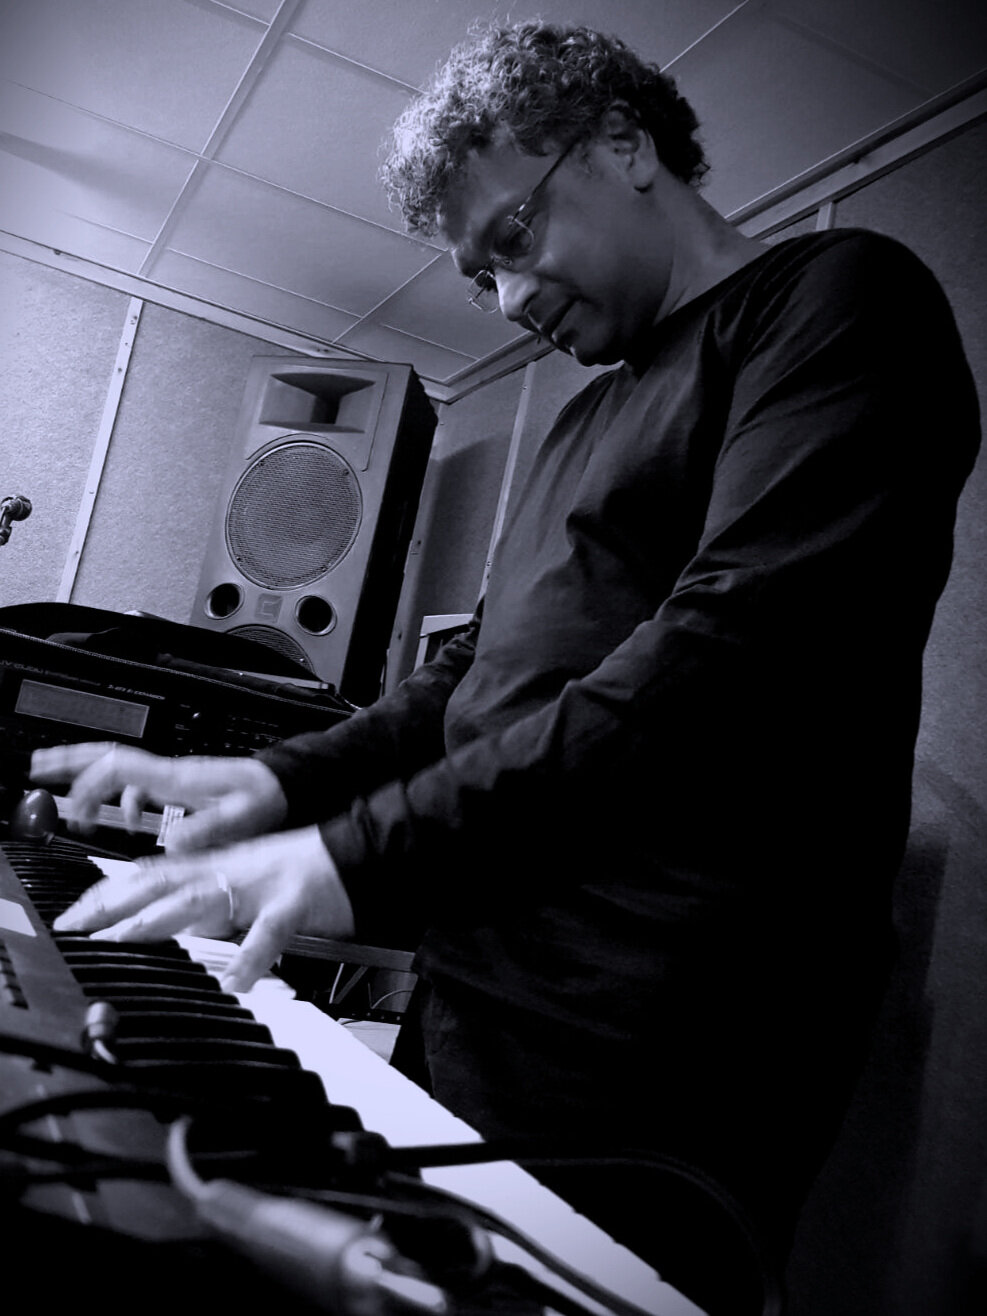 Roy Naidoo - Roy's main role is playing keyboards in a2RK, but he also undertakes production and design duties under the nom de plume 'otiabStudio' .Roy's musical influences are: Yes, Genesis, Pink Floyd, Spock's Beard, Flower Kings, Porcupine Tree, It Bites.Inspirational artists include Rick Wakeman, Tony Banks, Richard Wright and Jon Lord (all keyboard players, naturally..)Roy plays the following: Moog Voyager Old School, Korg CX-3, dsi Prophet 12, dsi Prophet '08, StudioLogic Sledge Black, Roland JV-2080, mfb Dominion 1.